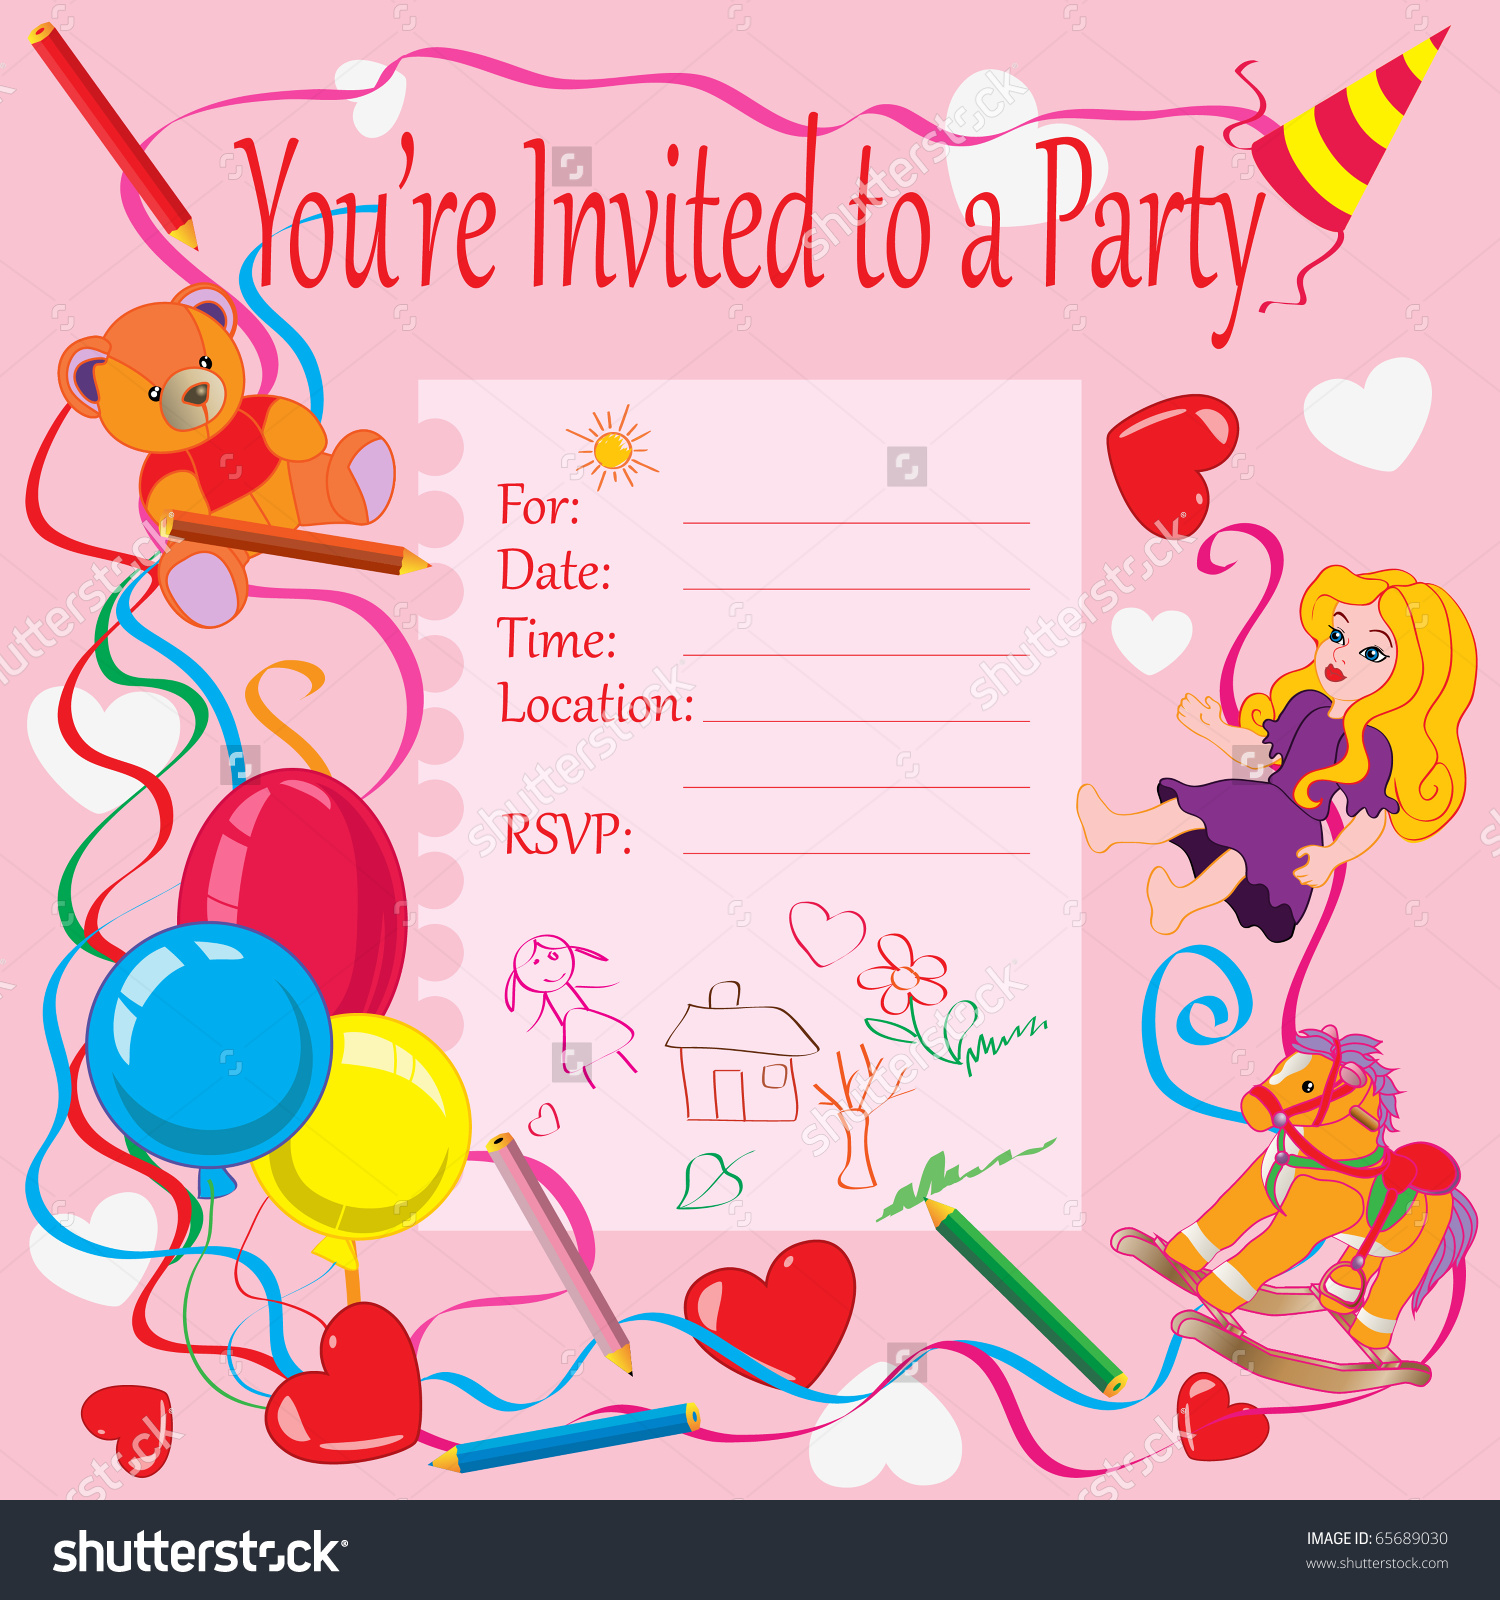 birthday theme cards ; kids-birthday-party-invitation-cards-how-to-make-your-own-Birthday-invitations-using-word-1